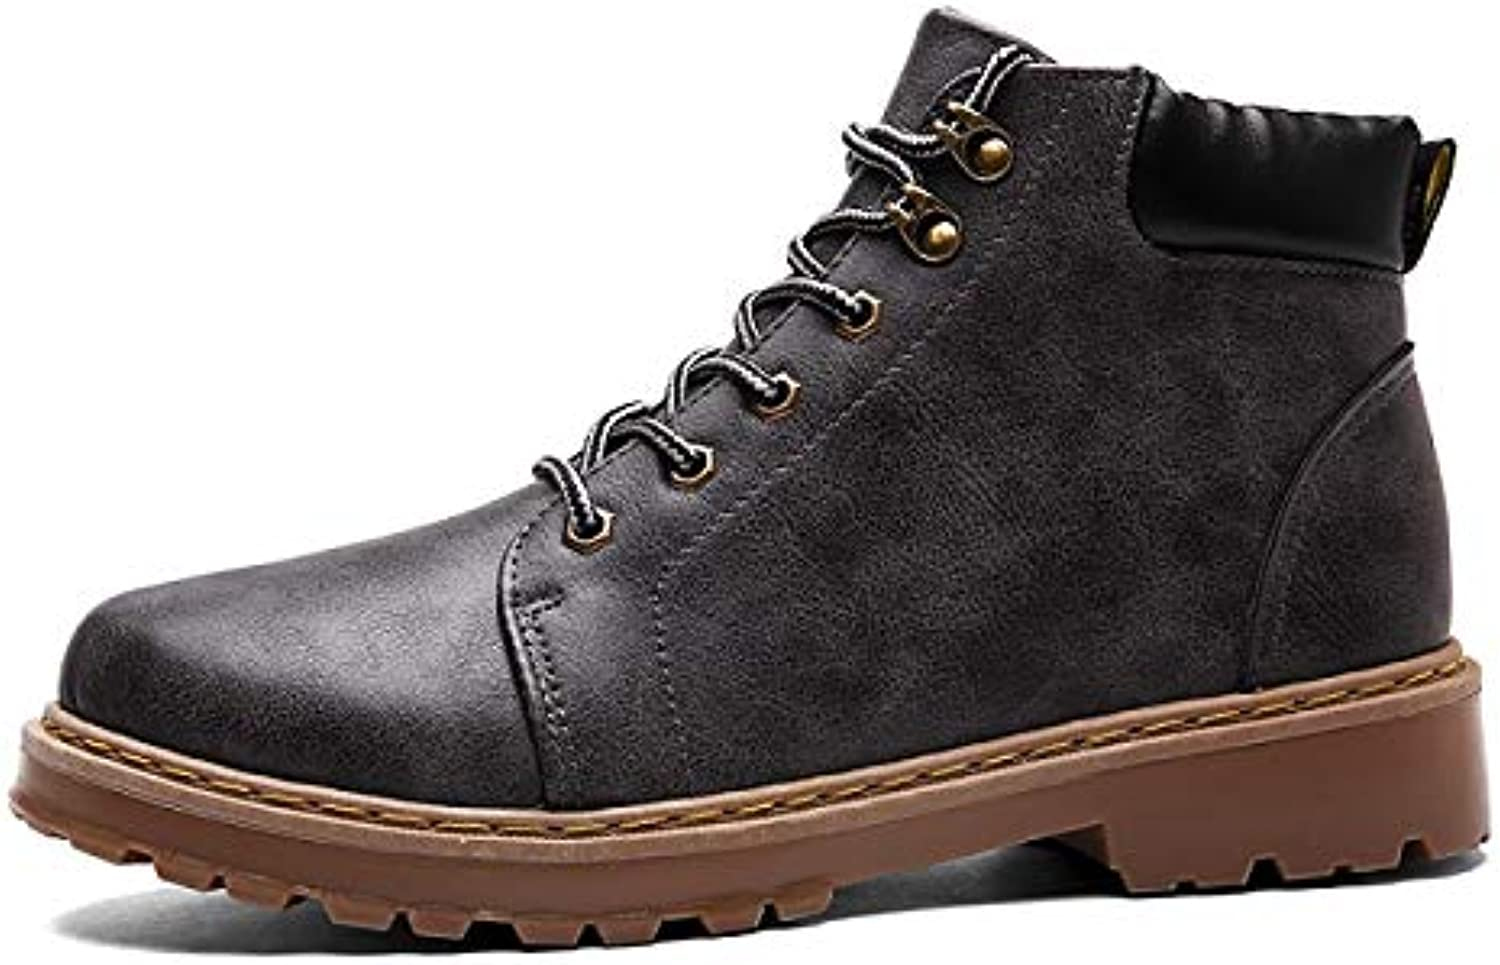 FHCGMX Genuine Leather Martin Boots For Men Male shoes Adult Spring Autumn Ankle Boots Comfort Lace-up Footwear